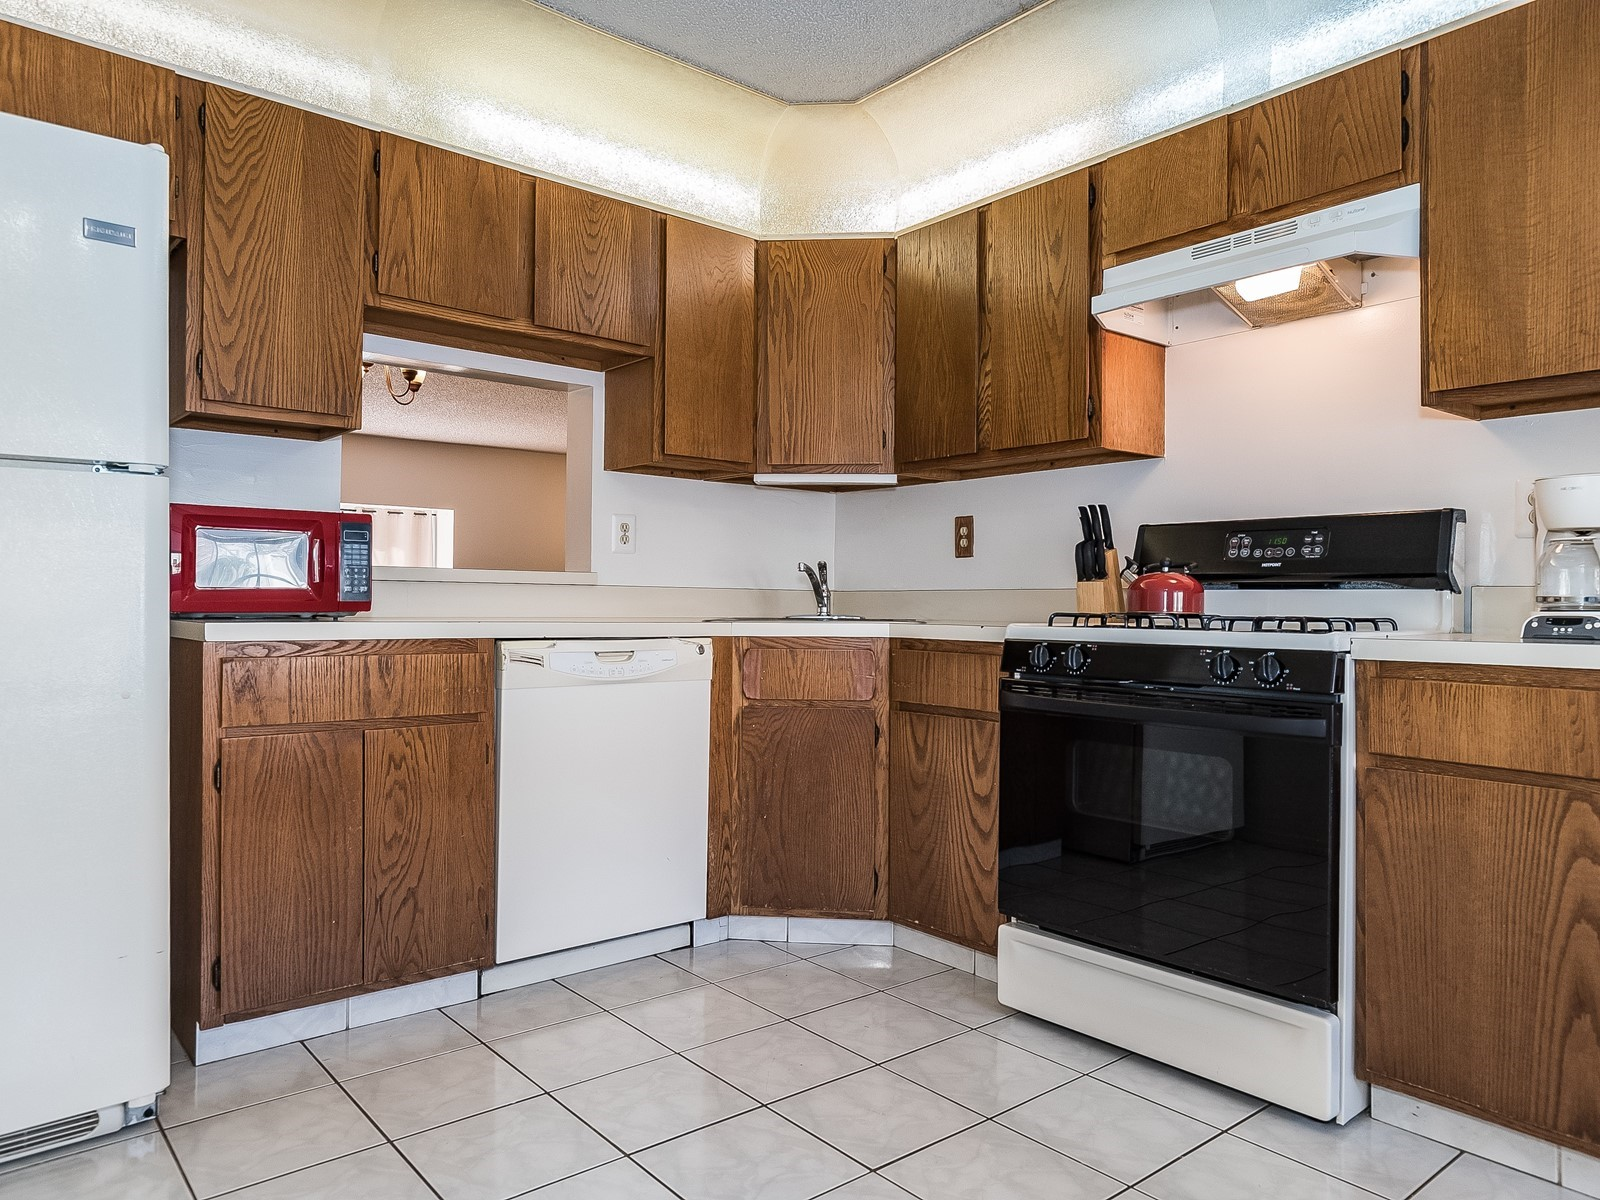 Piscataway 147 Furnished housing kitchen with refrigerator, oven and included appliances